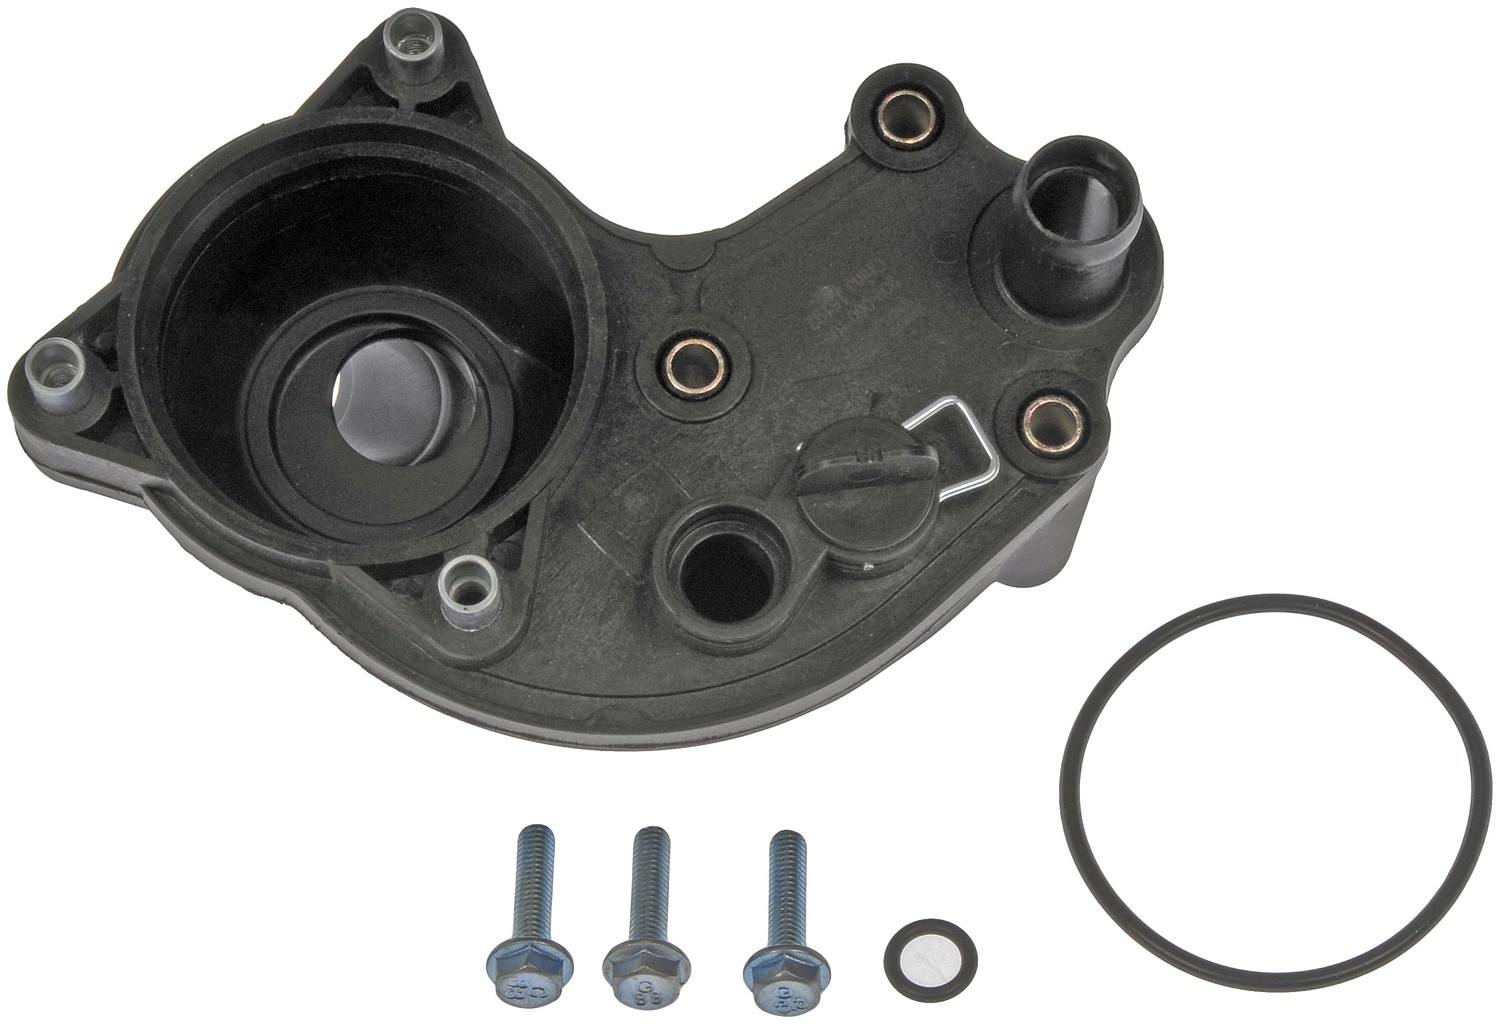 DORMAN OE SOLUTIONS - Engine Coolant Thermostat Housing Assembly - DRE 902-060